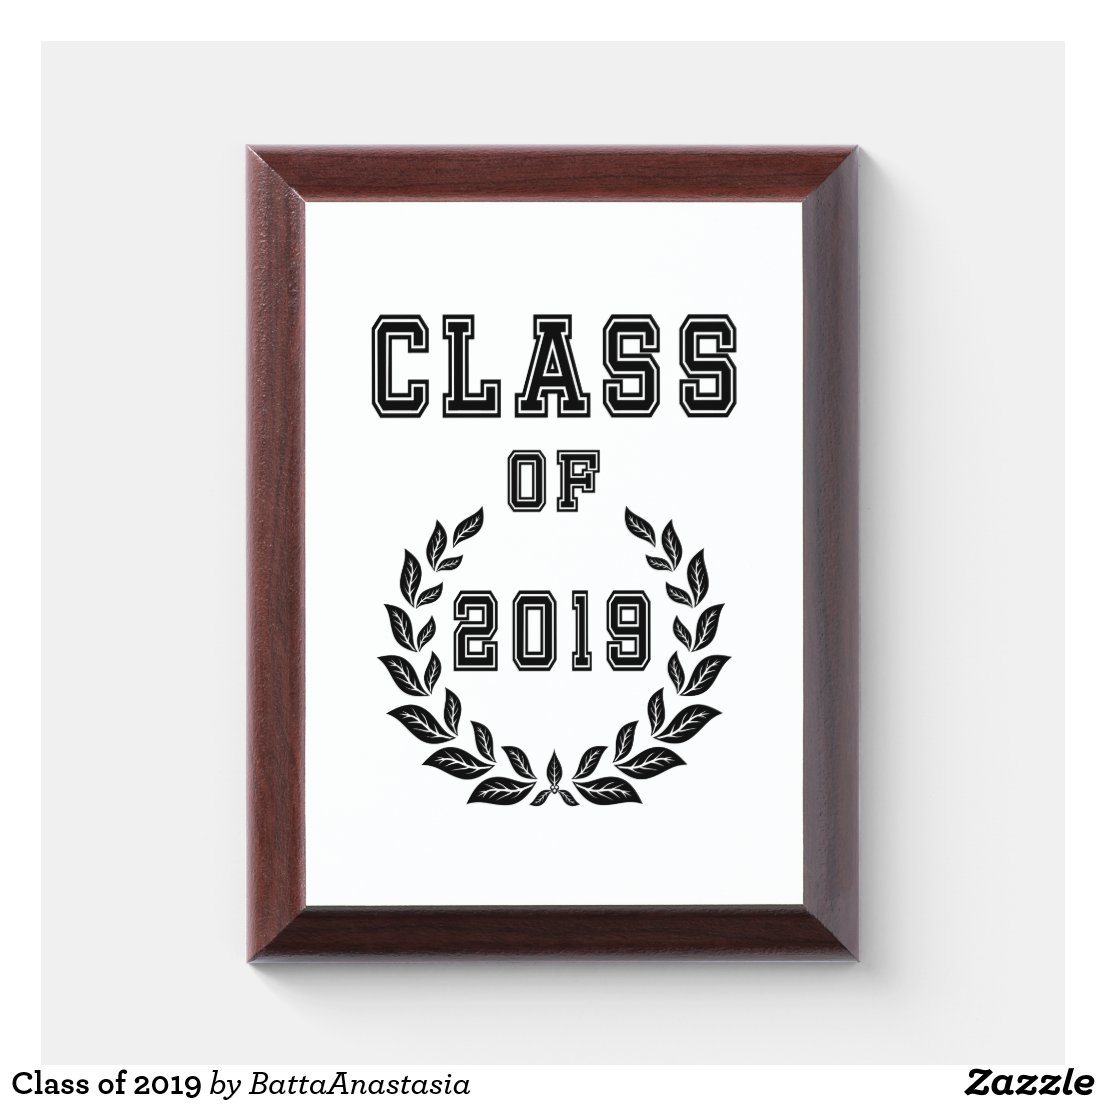 Class of 2019 award plaque